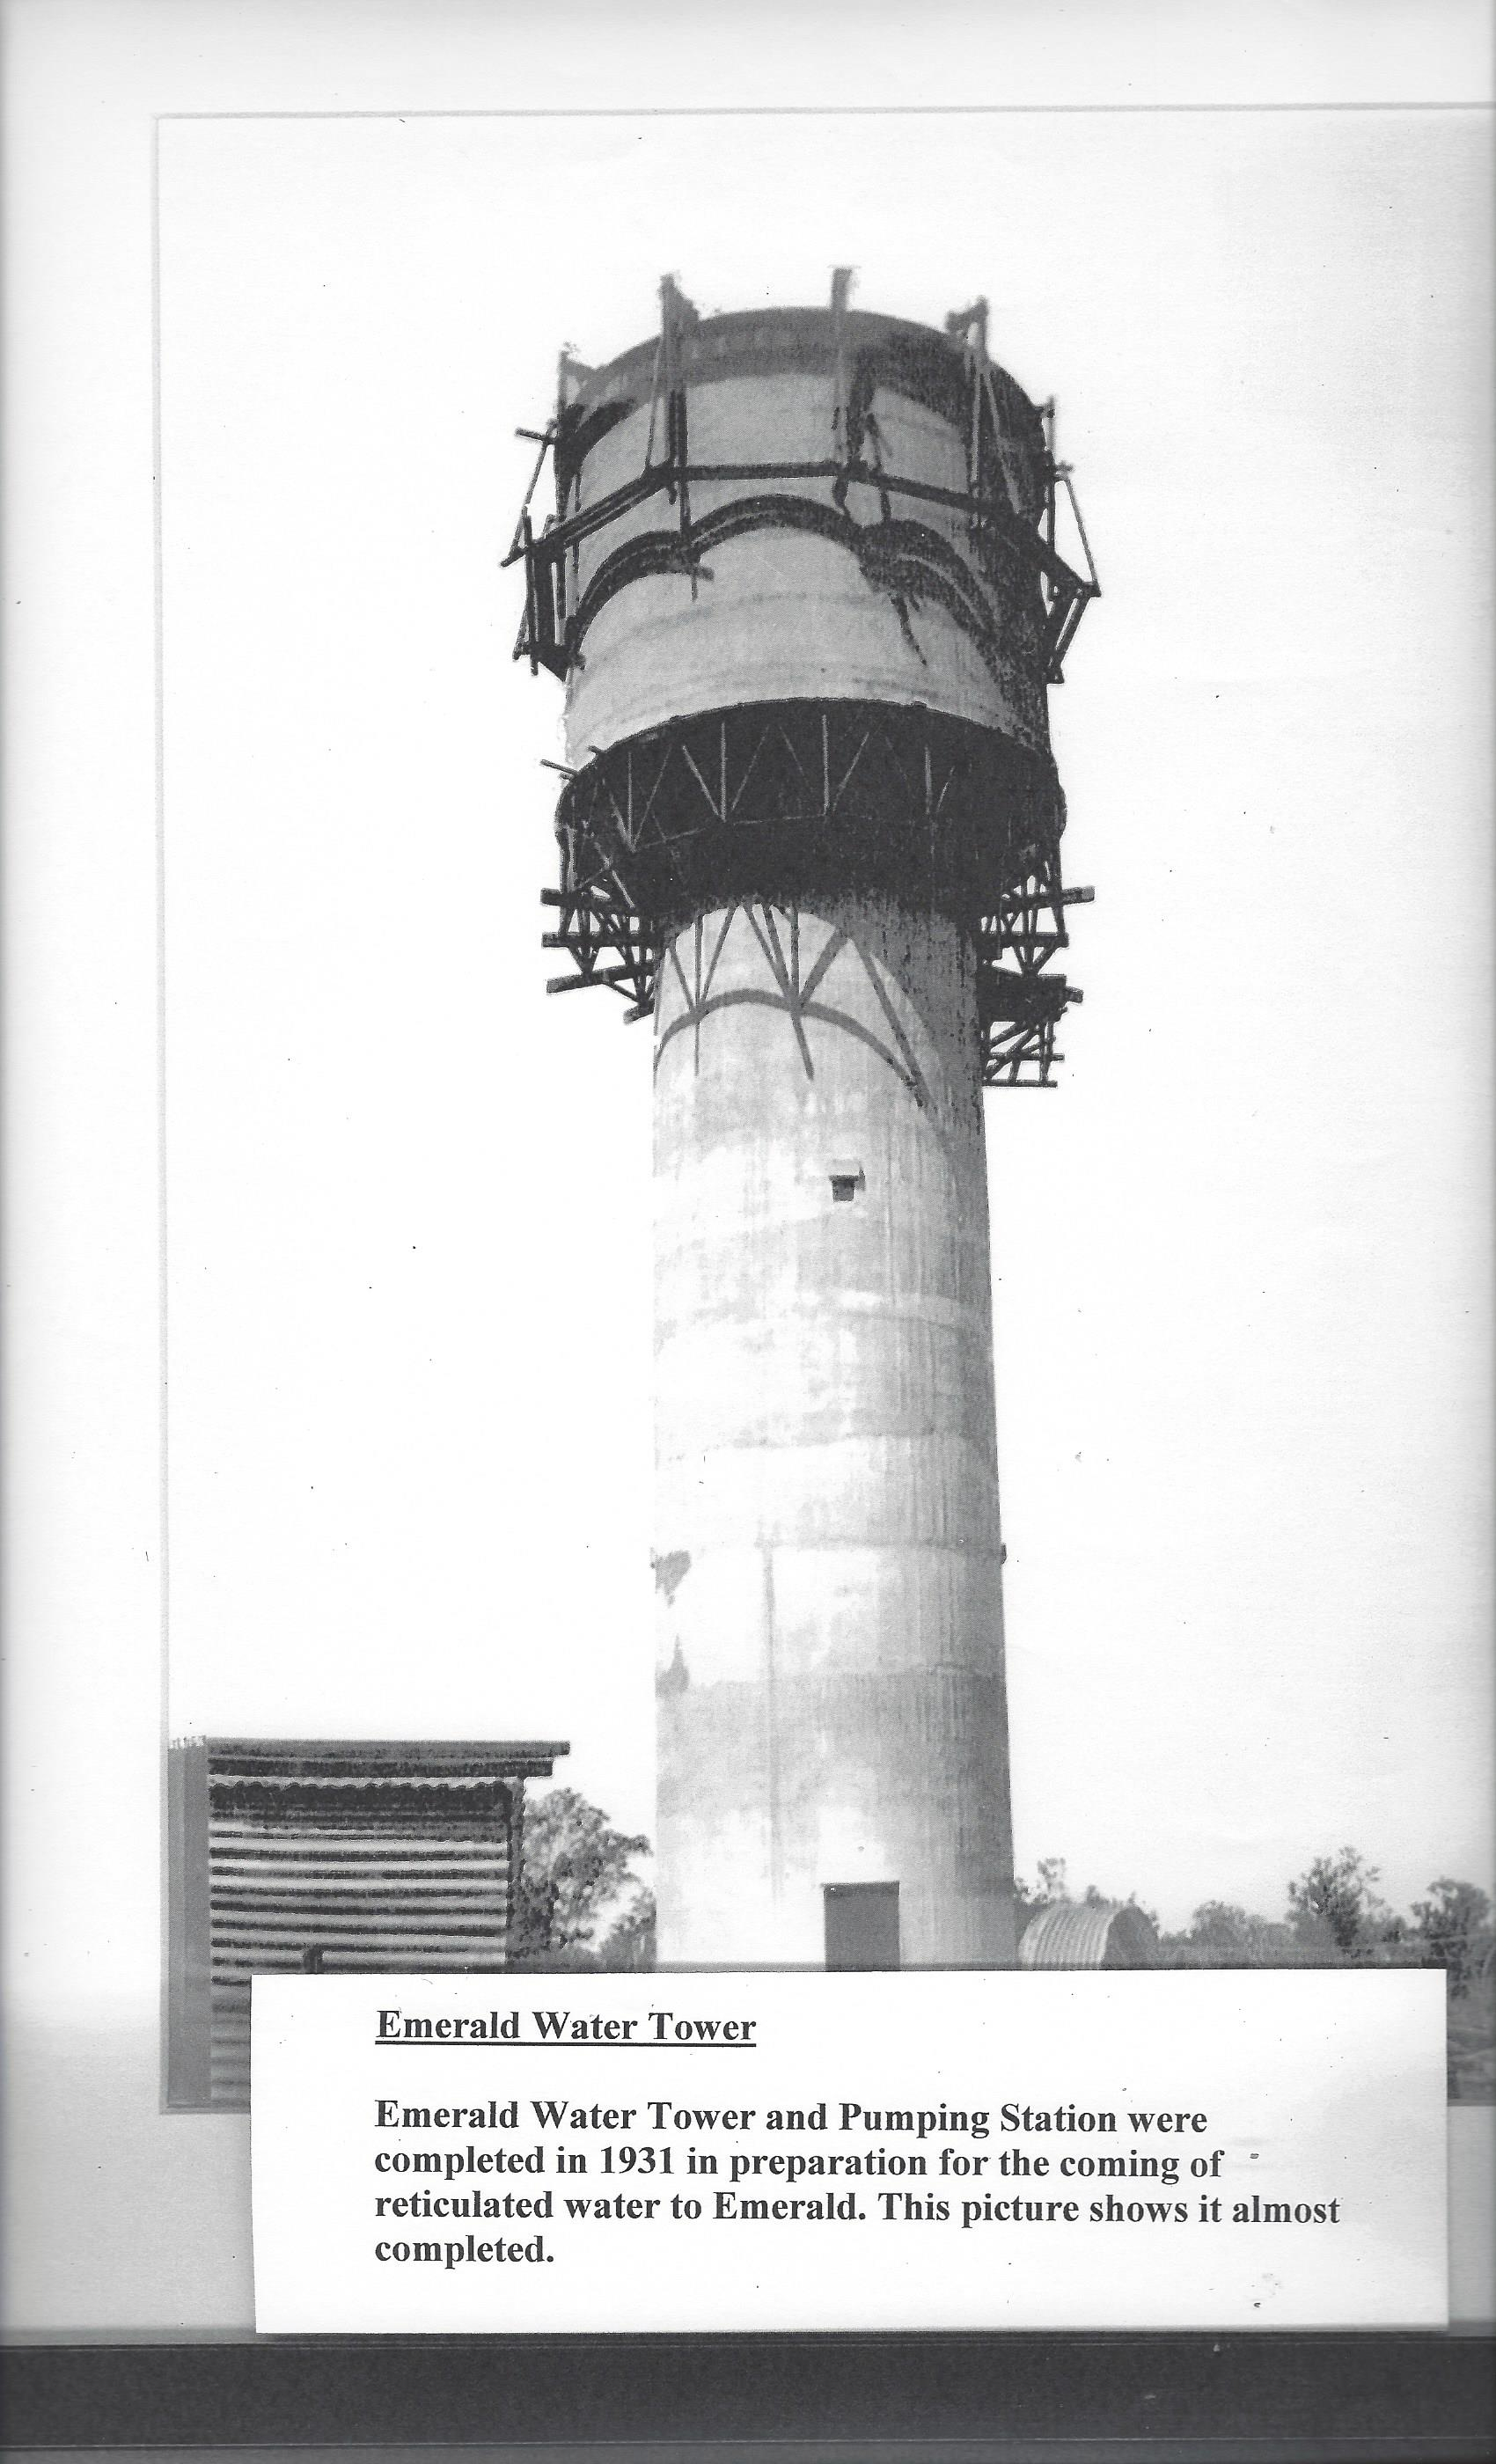 08 Emerald Water Tower